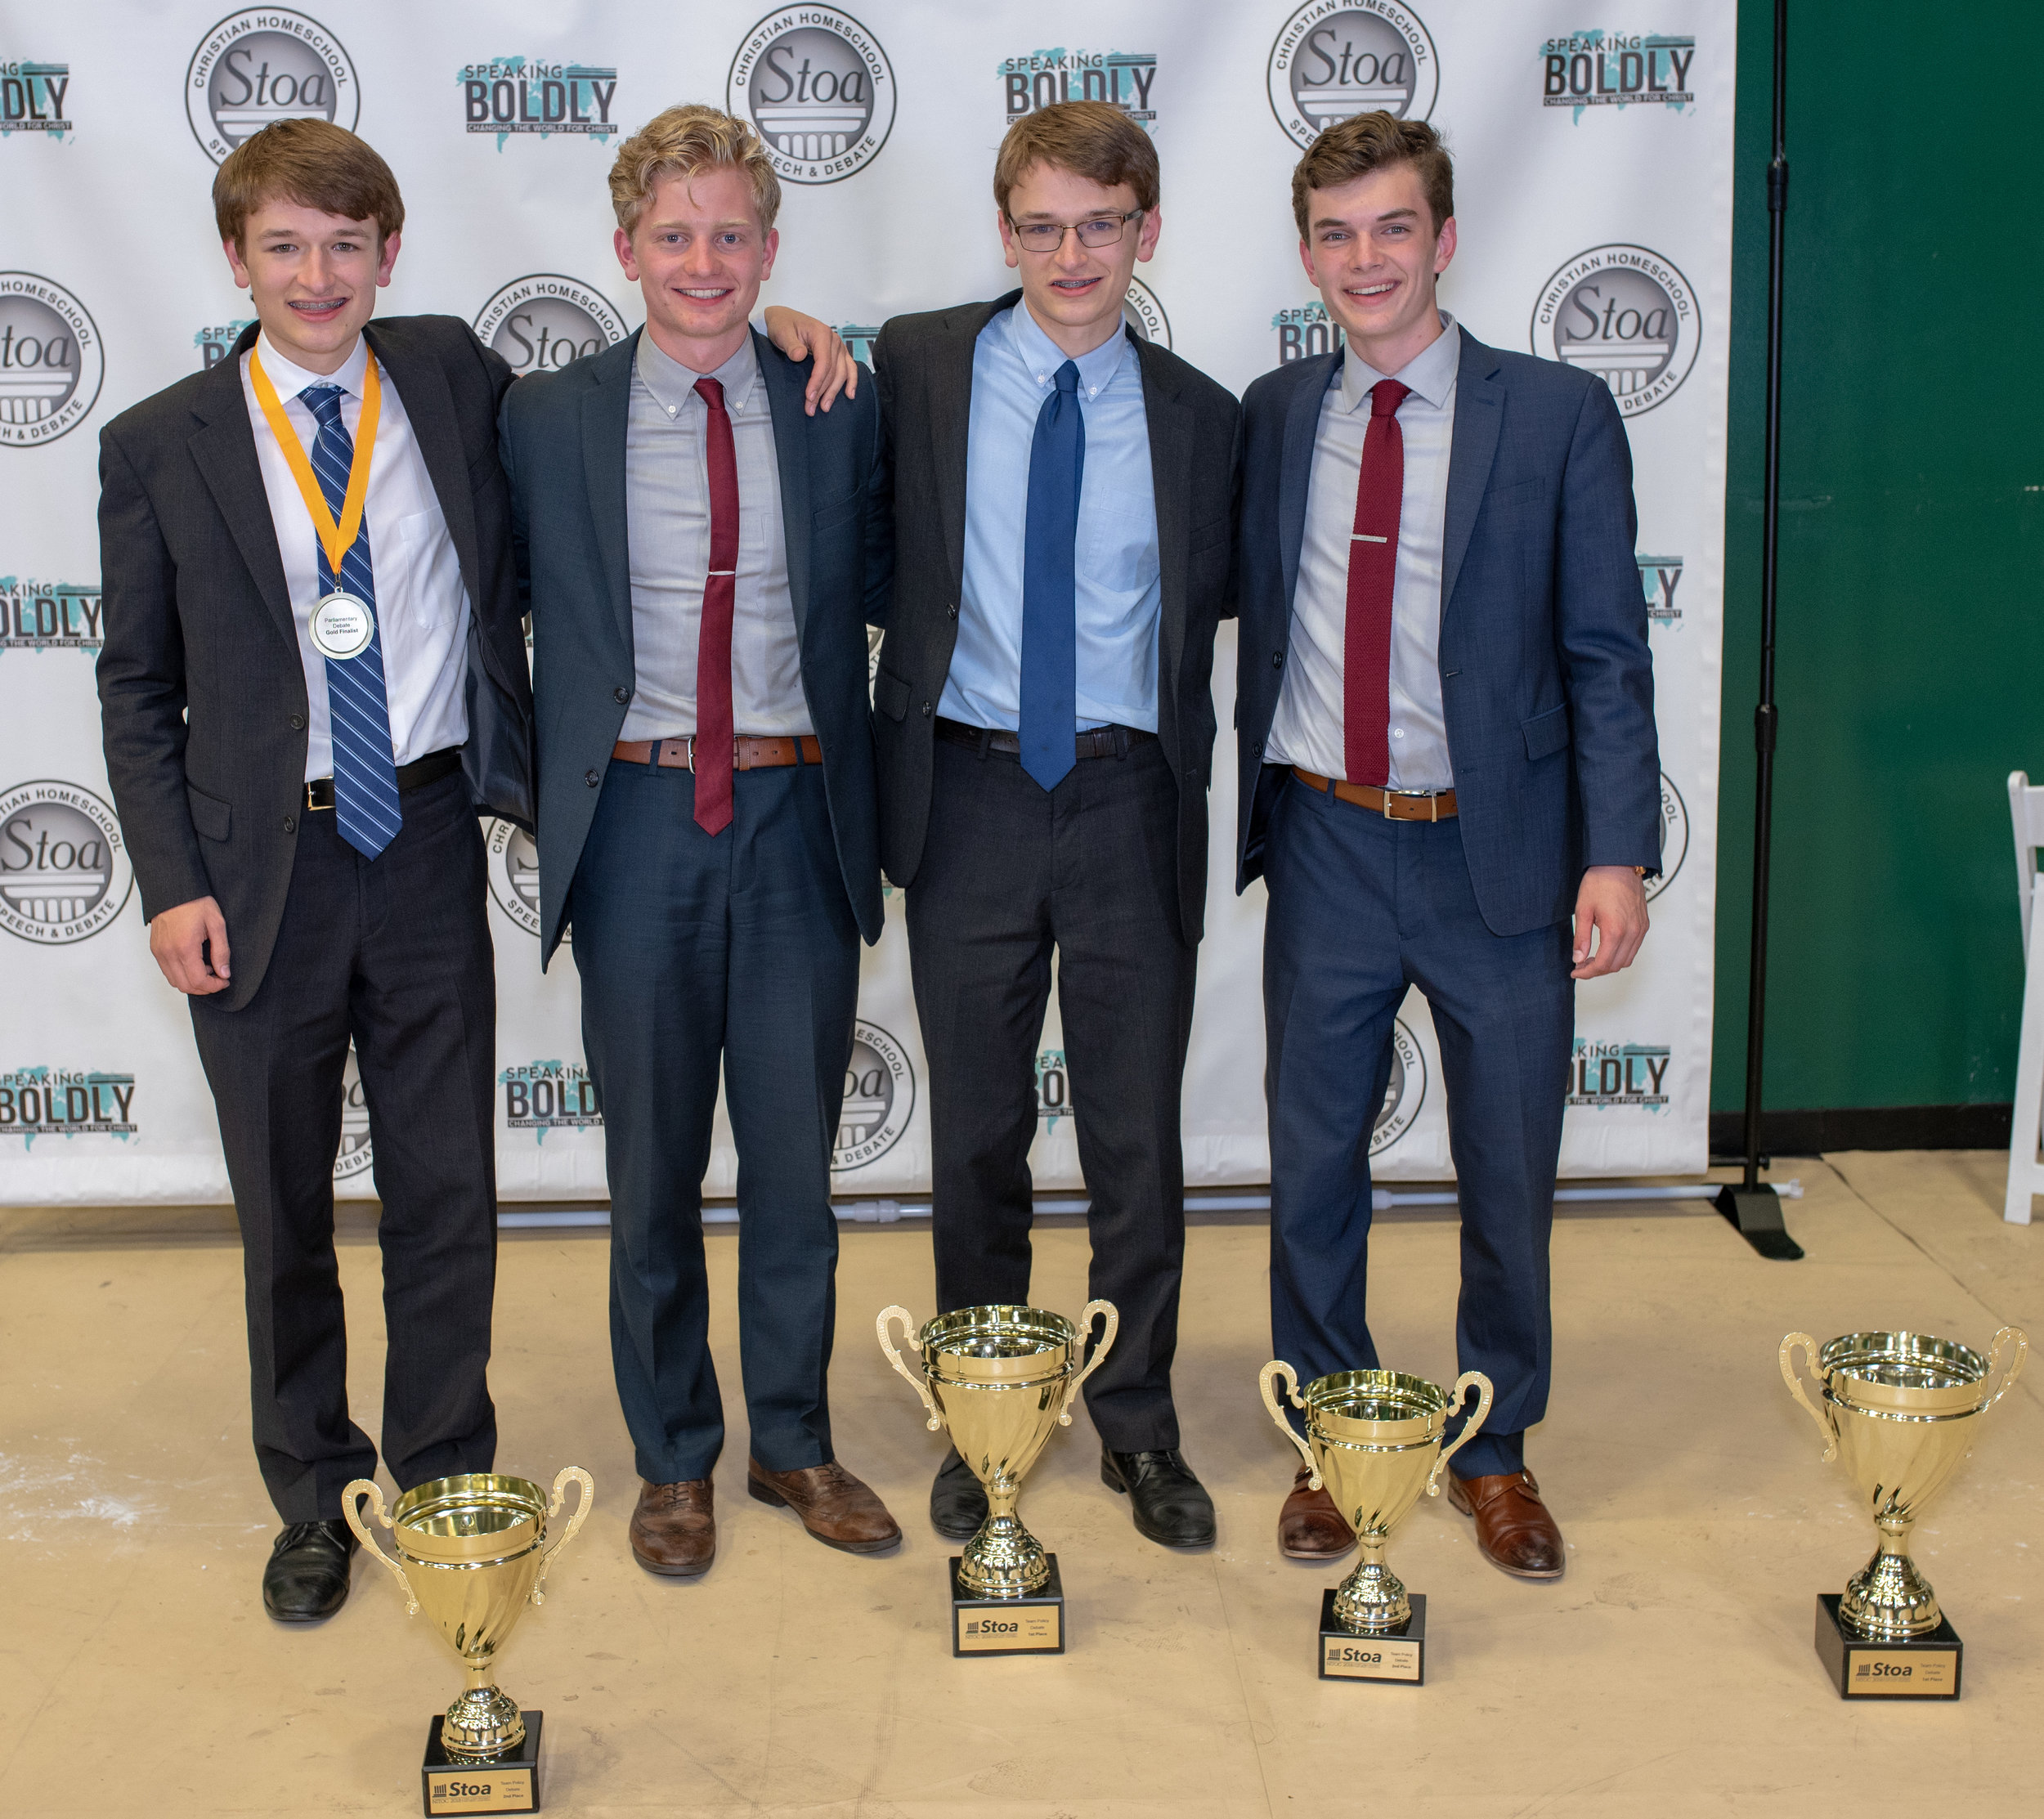 Sam Wooddell and his partner Jeffrey Pistor (red tie) won the National Championship at NITOC 2018.